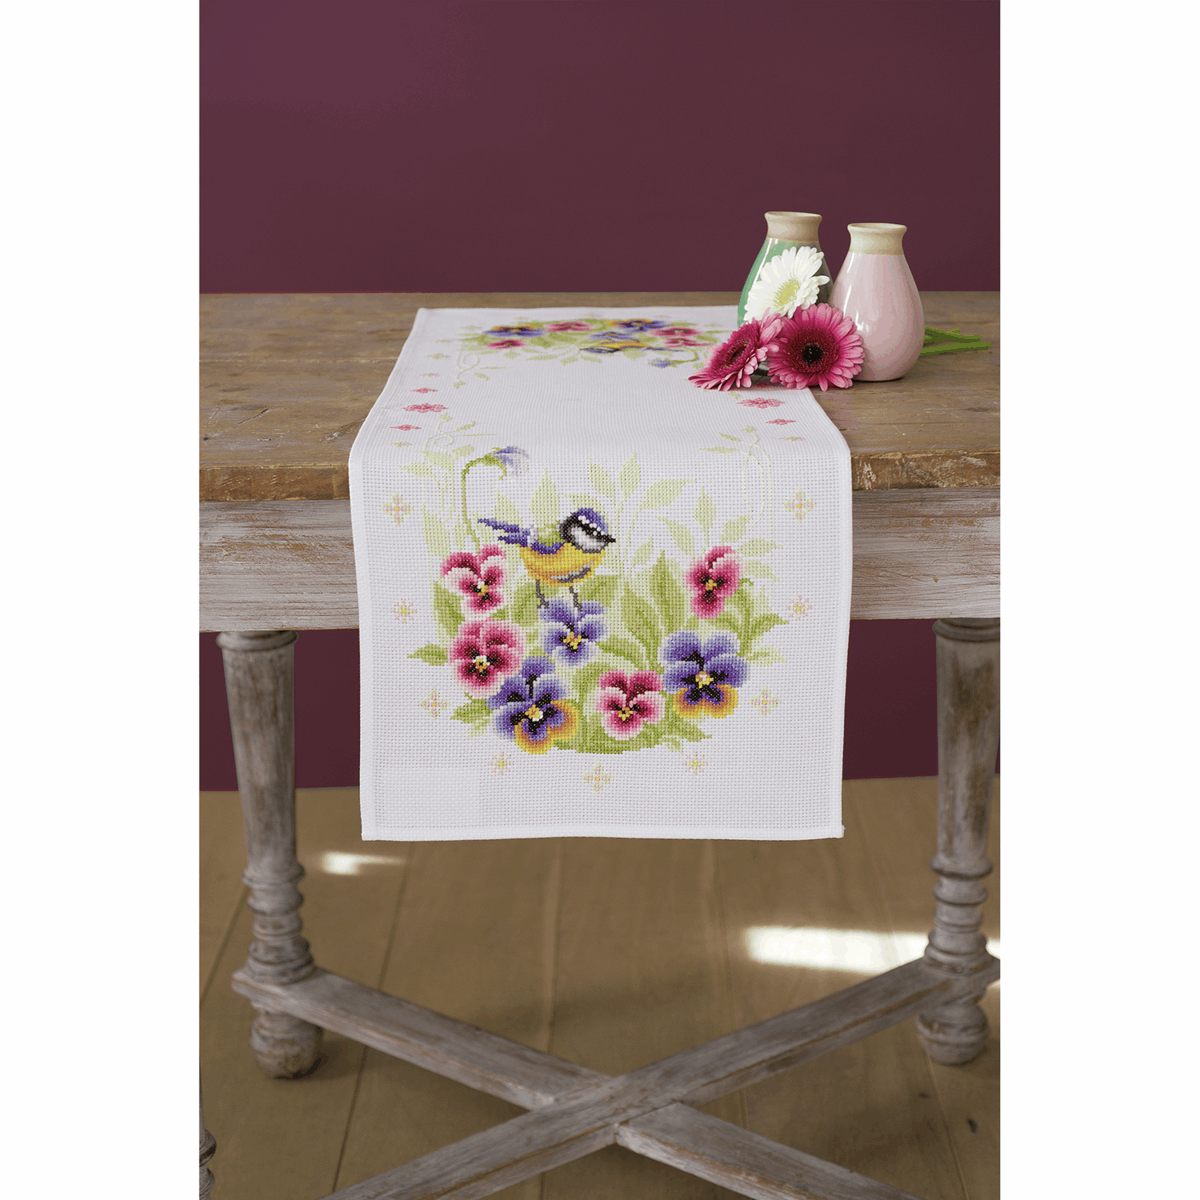 Picture of Cross Stitch Kit: Runner: Birds & Violets